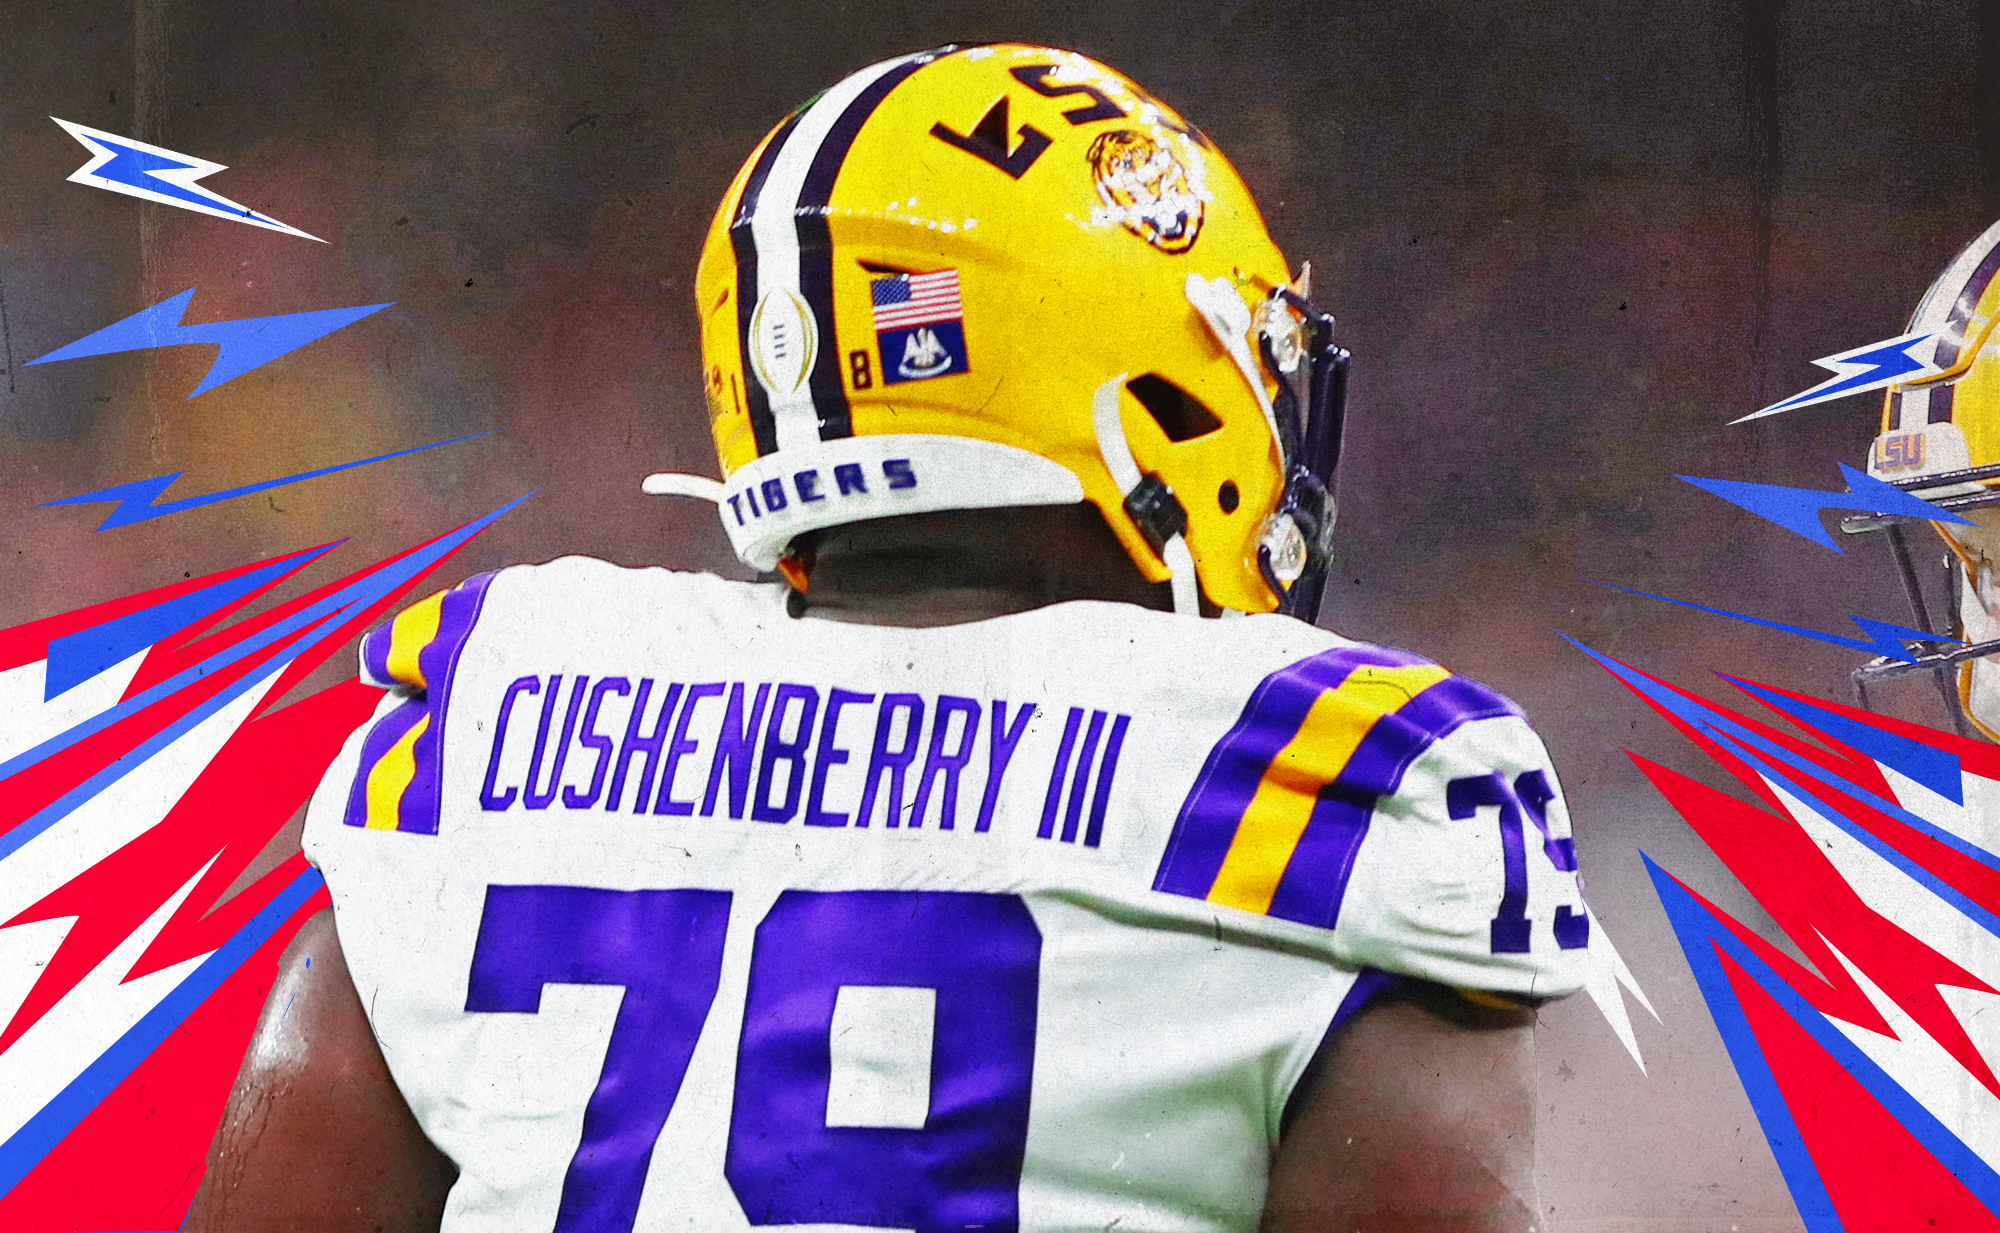 A photo showing the back of LSU OT Lloyd Cushenberry III's jersey, with red, white, and blue lines in the background